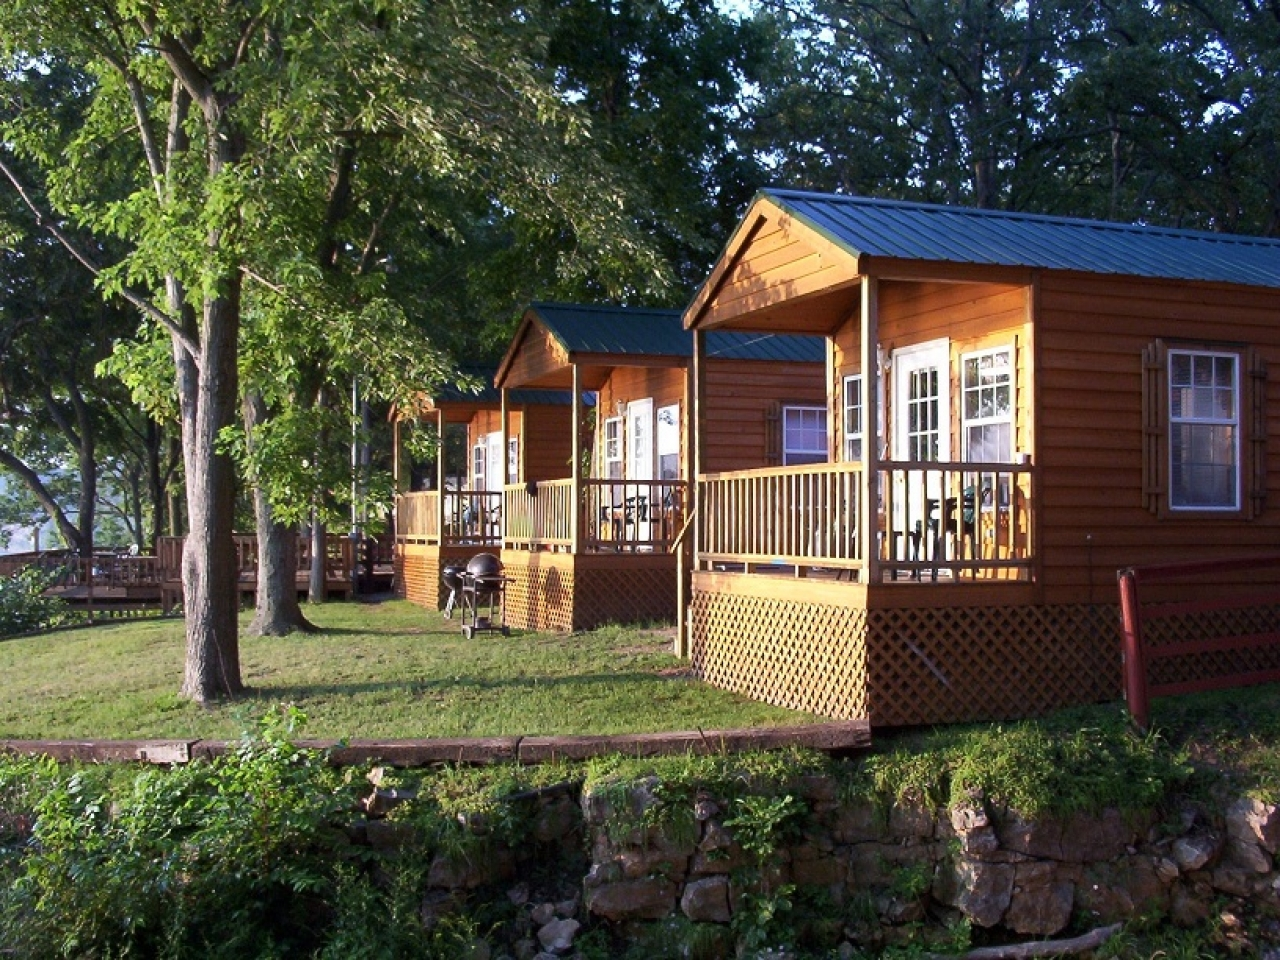 Grand Lake Oklahoma Cabin Rentals Grand Lake Cabins for